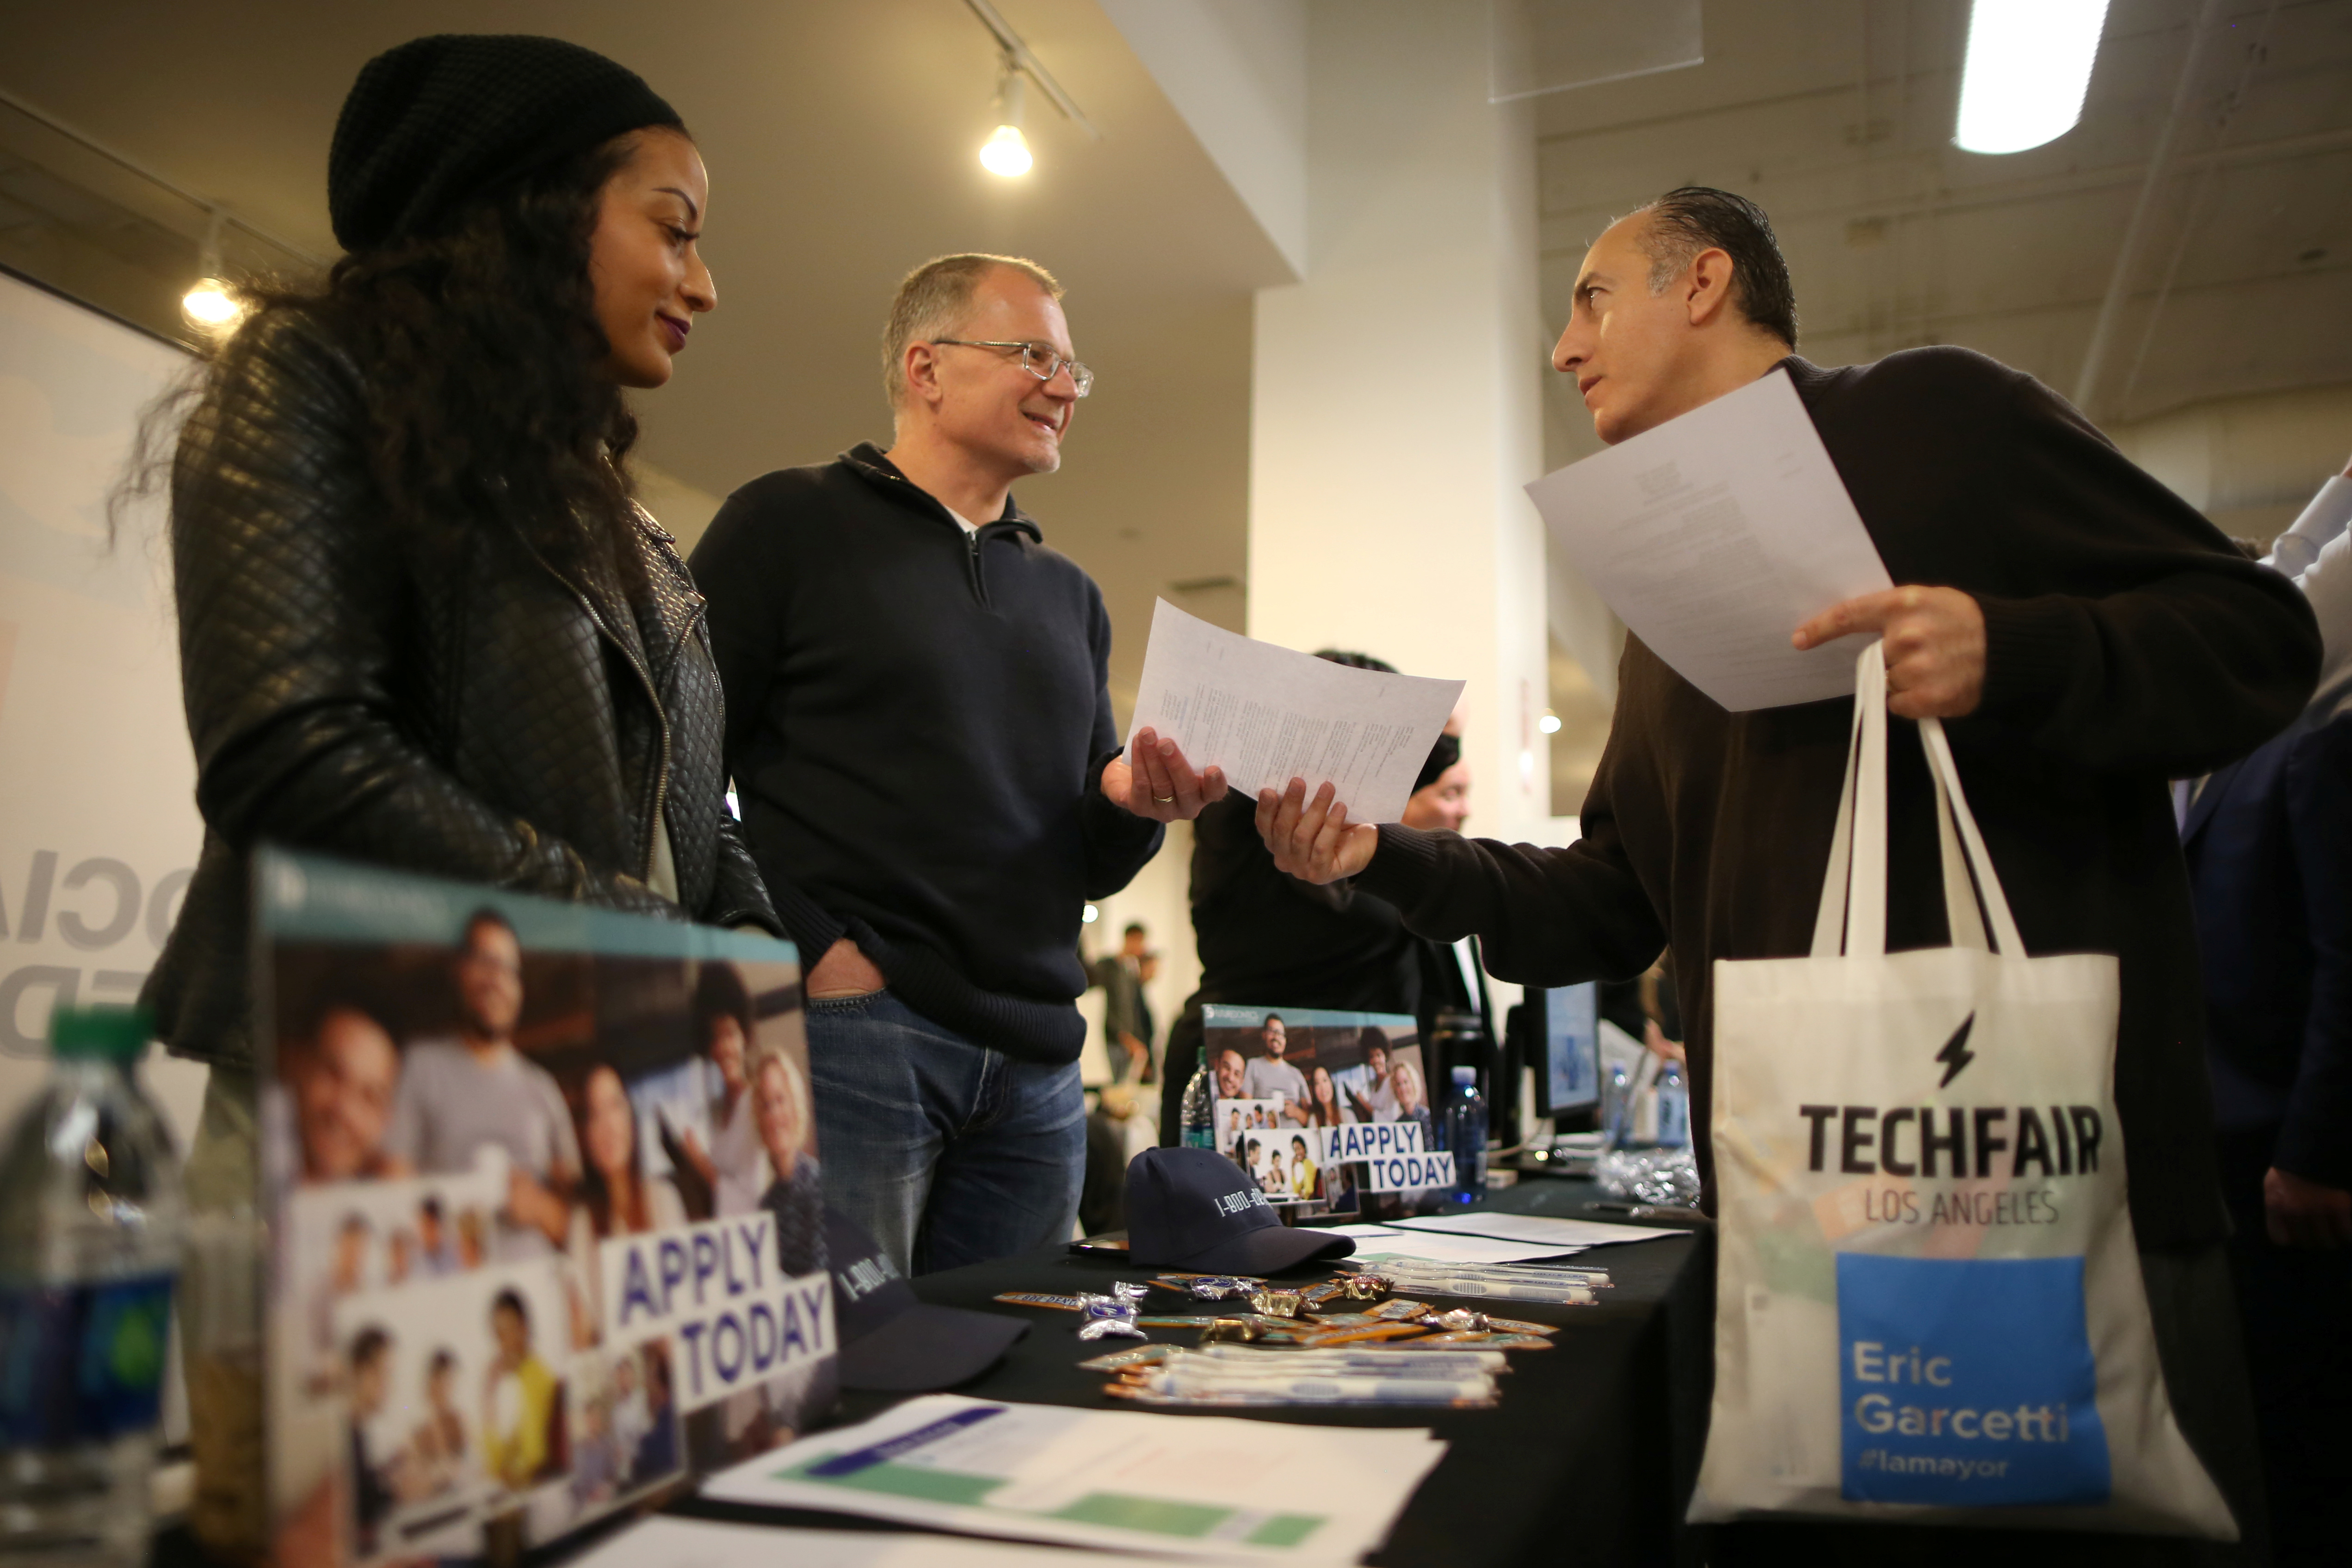 US employers add just 98K jobs, as rate falls to 4.5 pct